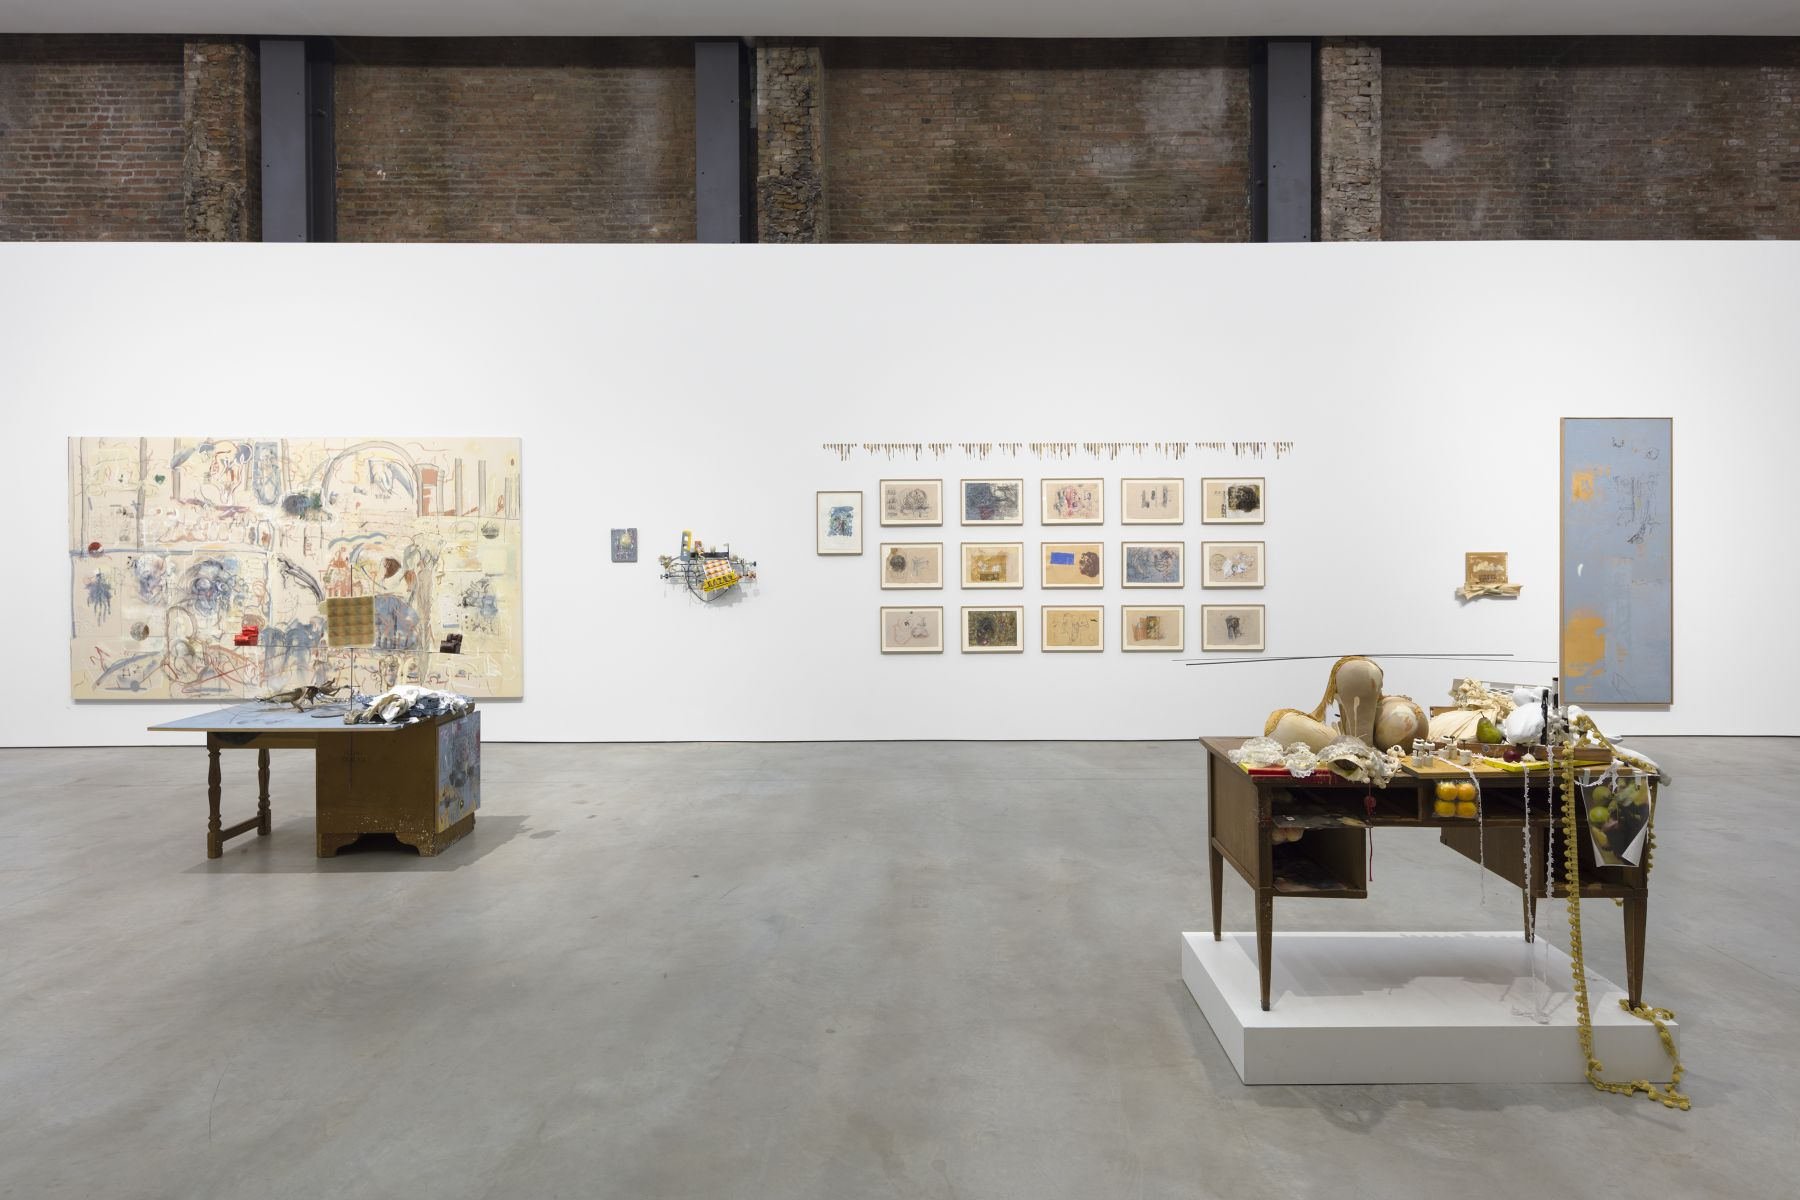 Installation Image: Second Floor